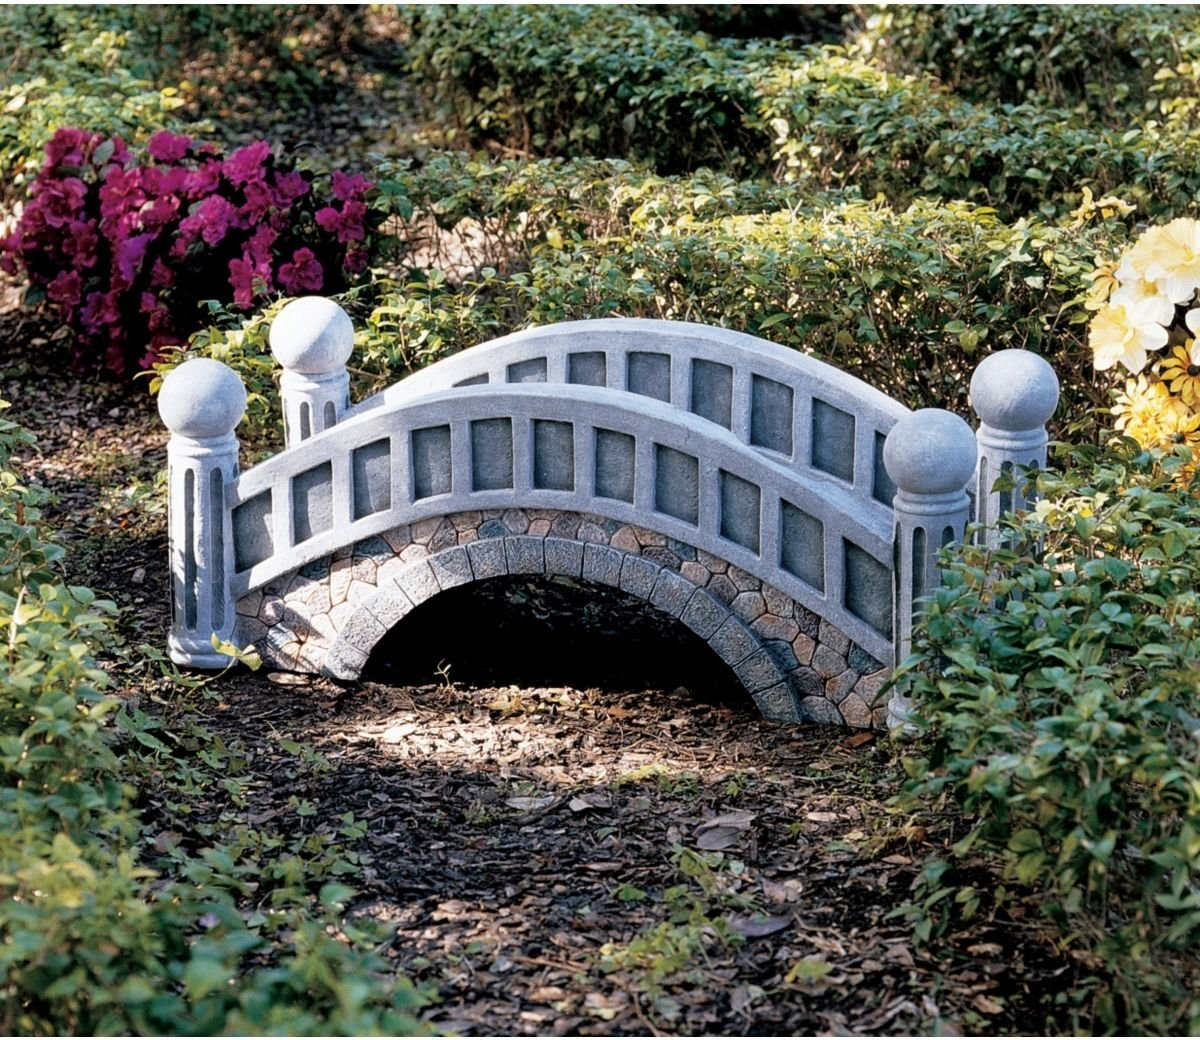 Beauti Garden Pond With Bridge 18 Small And Beautiful Fairy Tale Garden Bridges